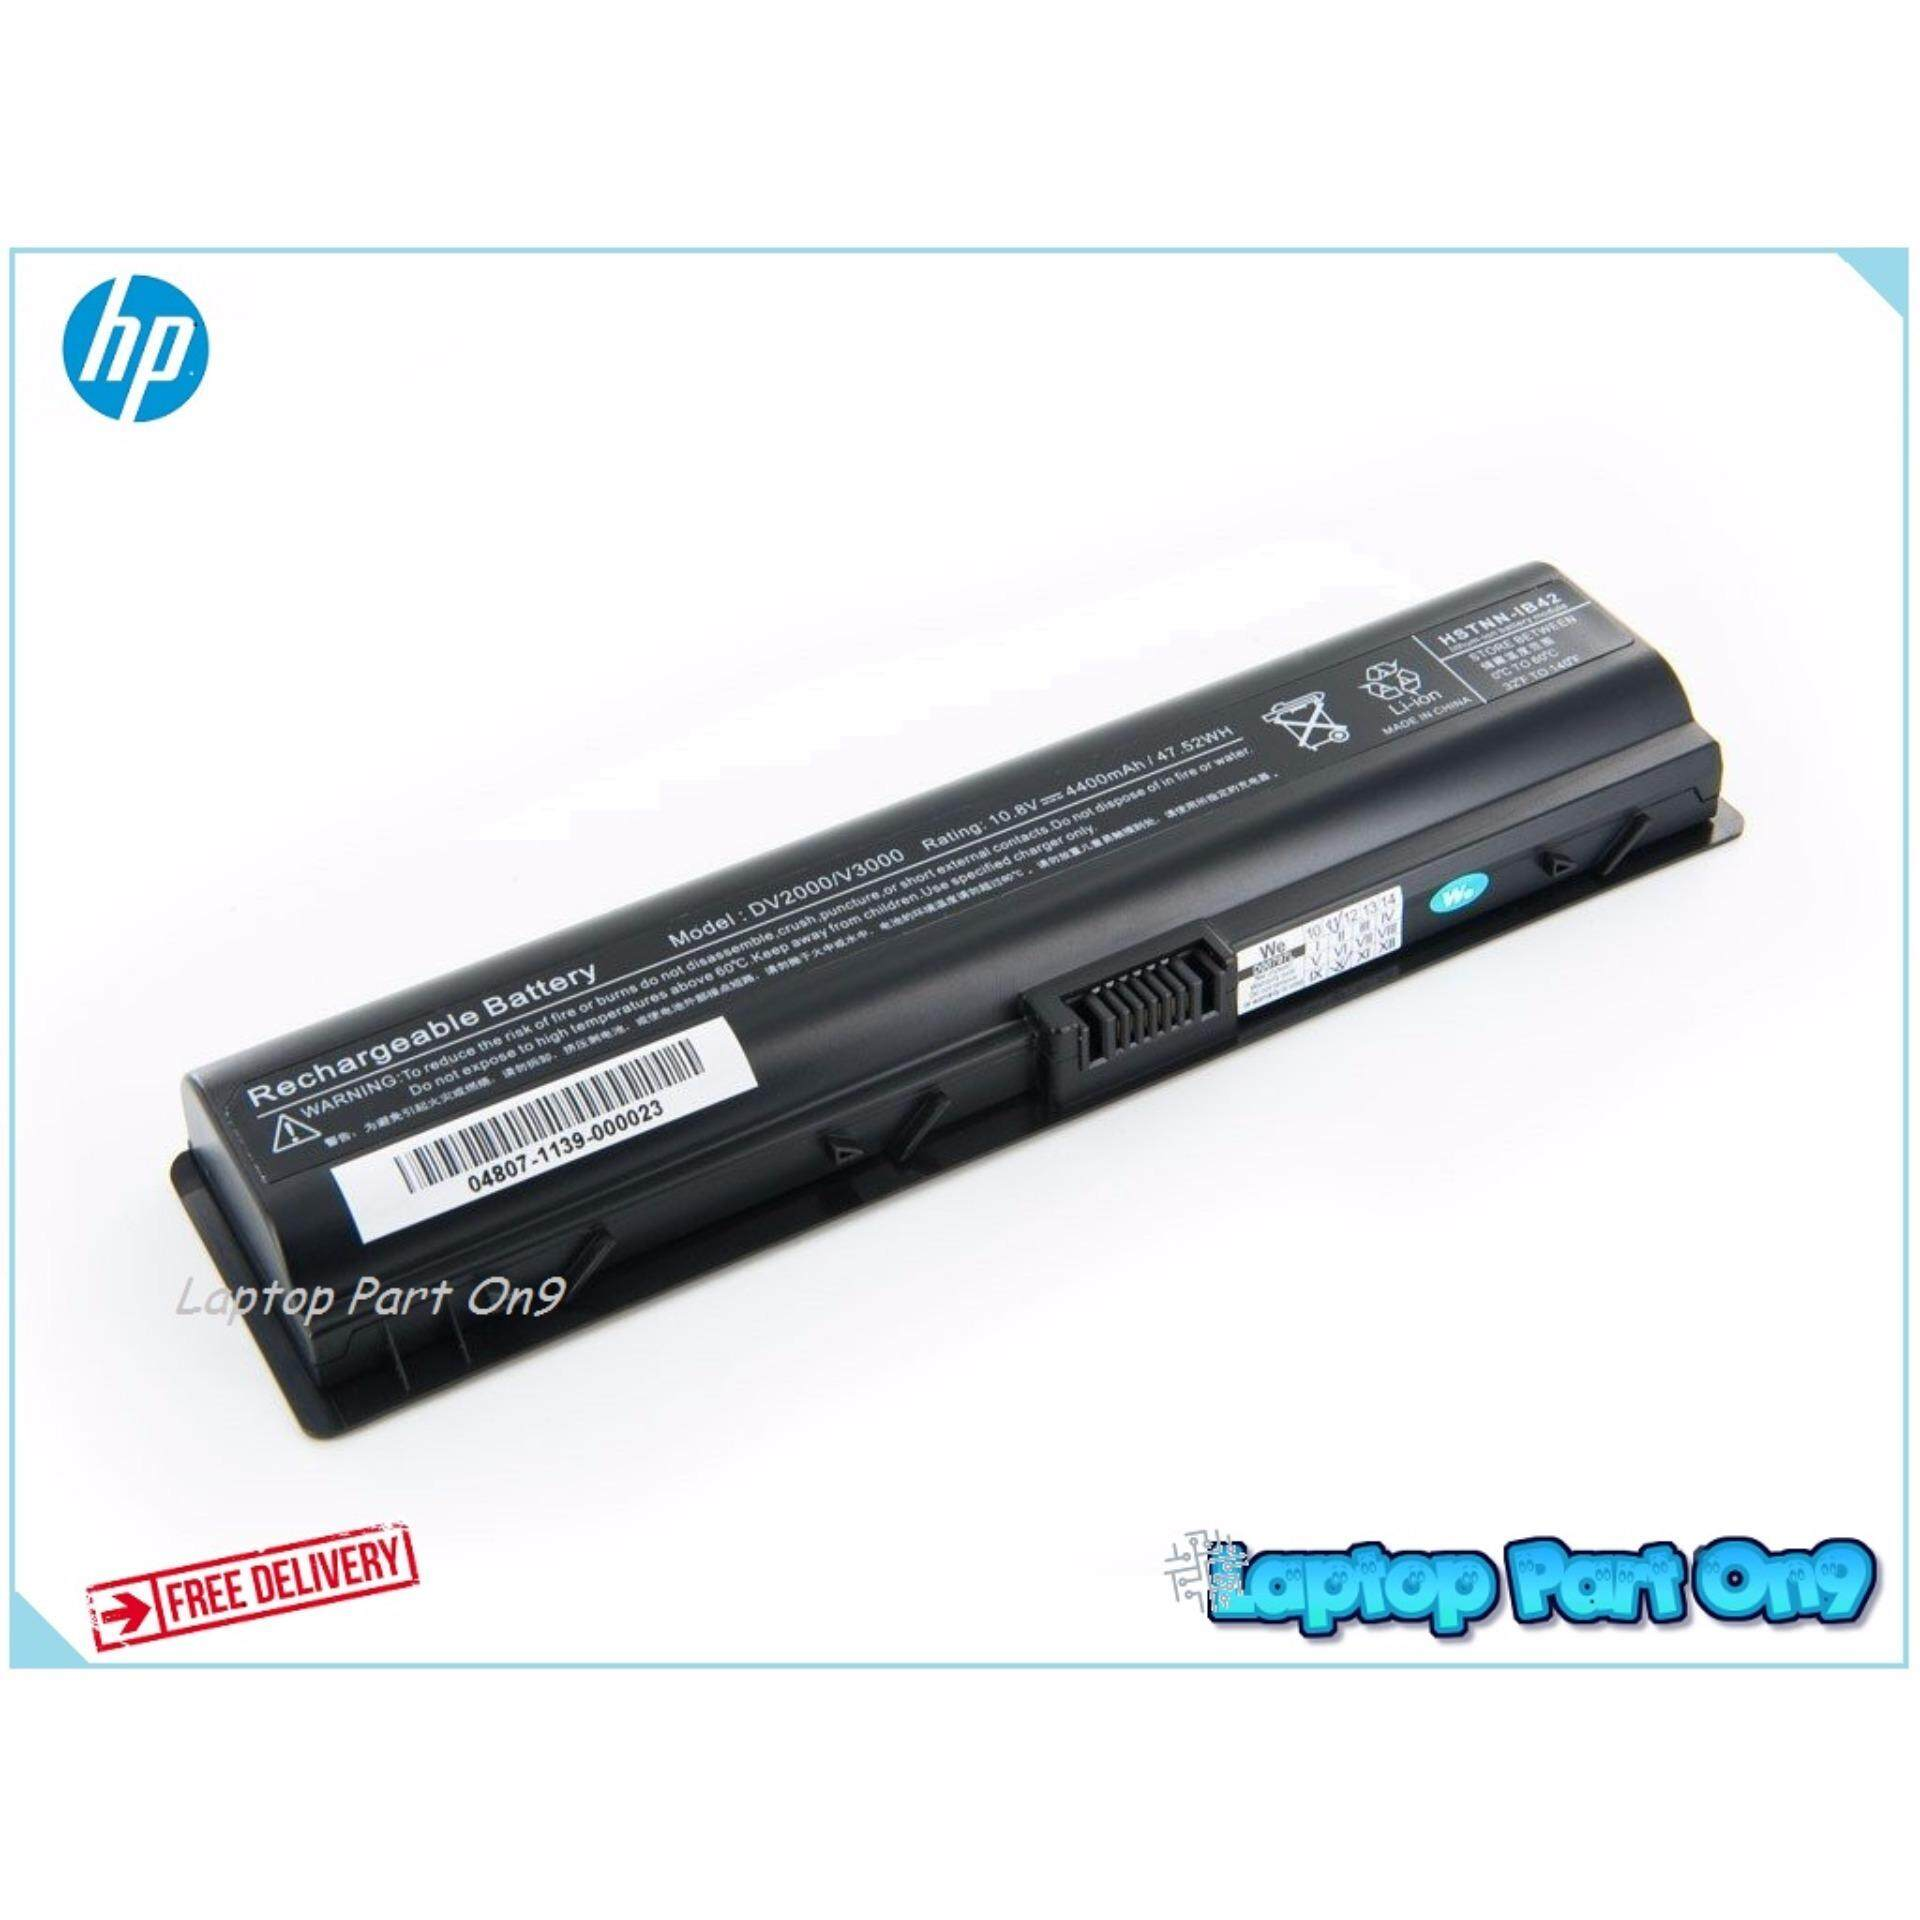 HP Compaq Presario V3000 C700 DV2000 F700 Laptop Battery [6 MONTHS WARRANTY] Malaysia